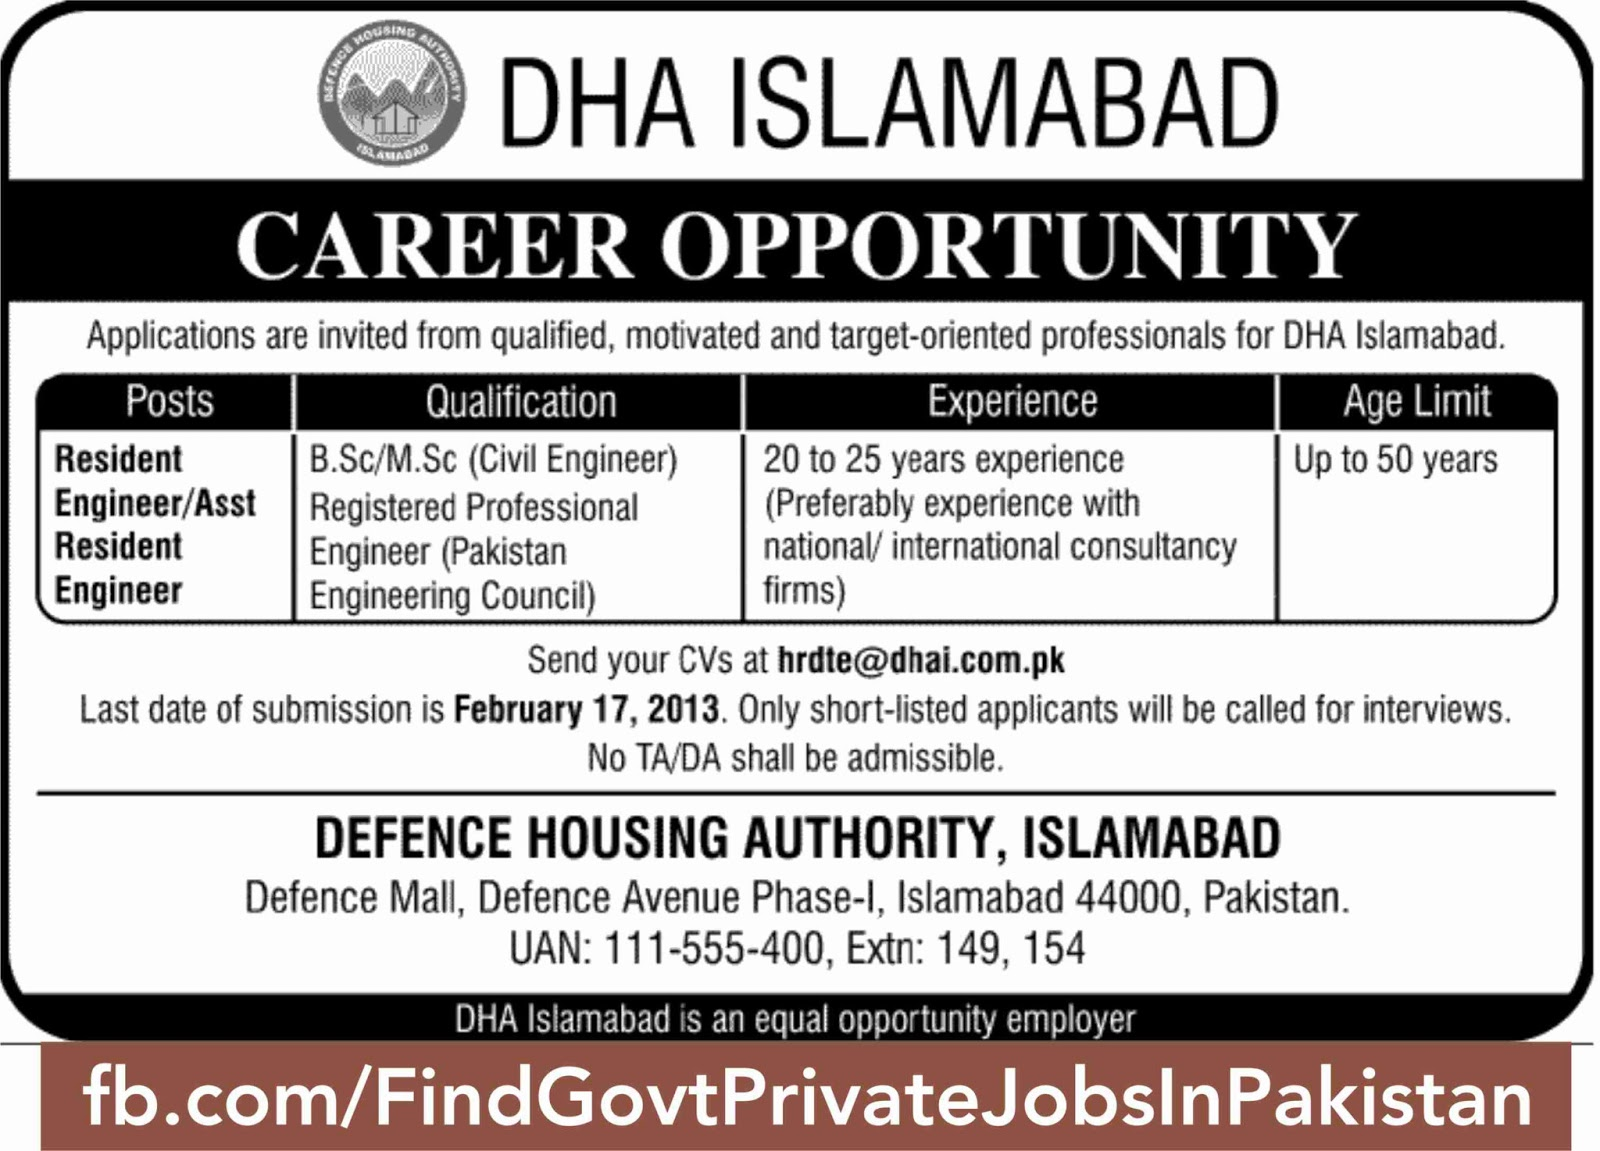 dha islamabad posted job ads in jang sunday